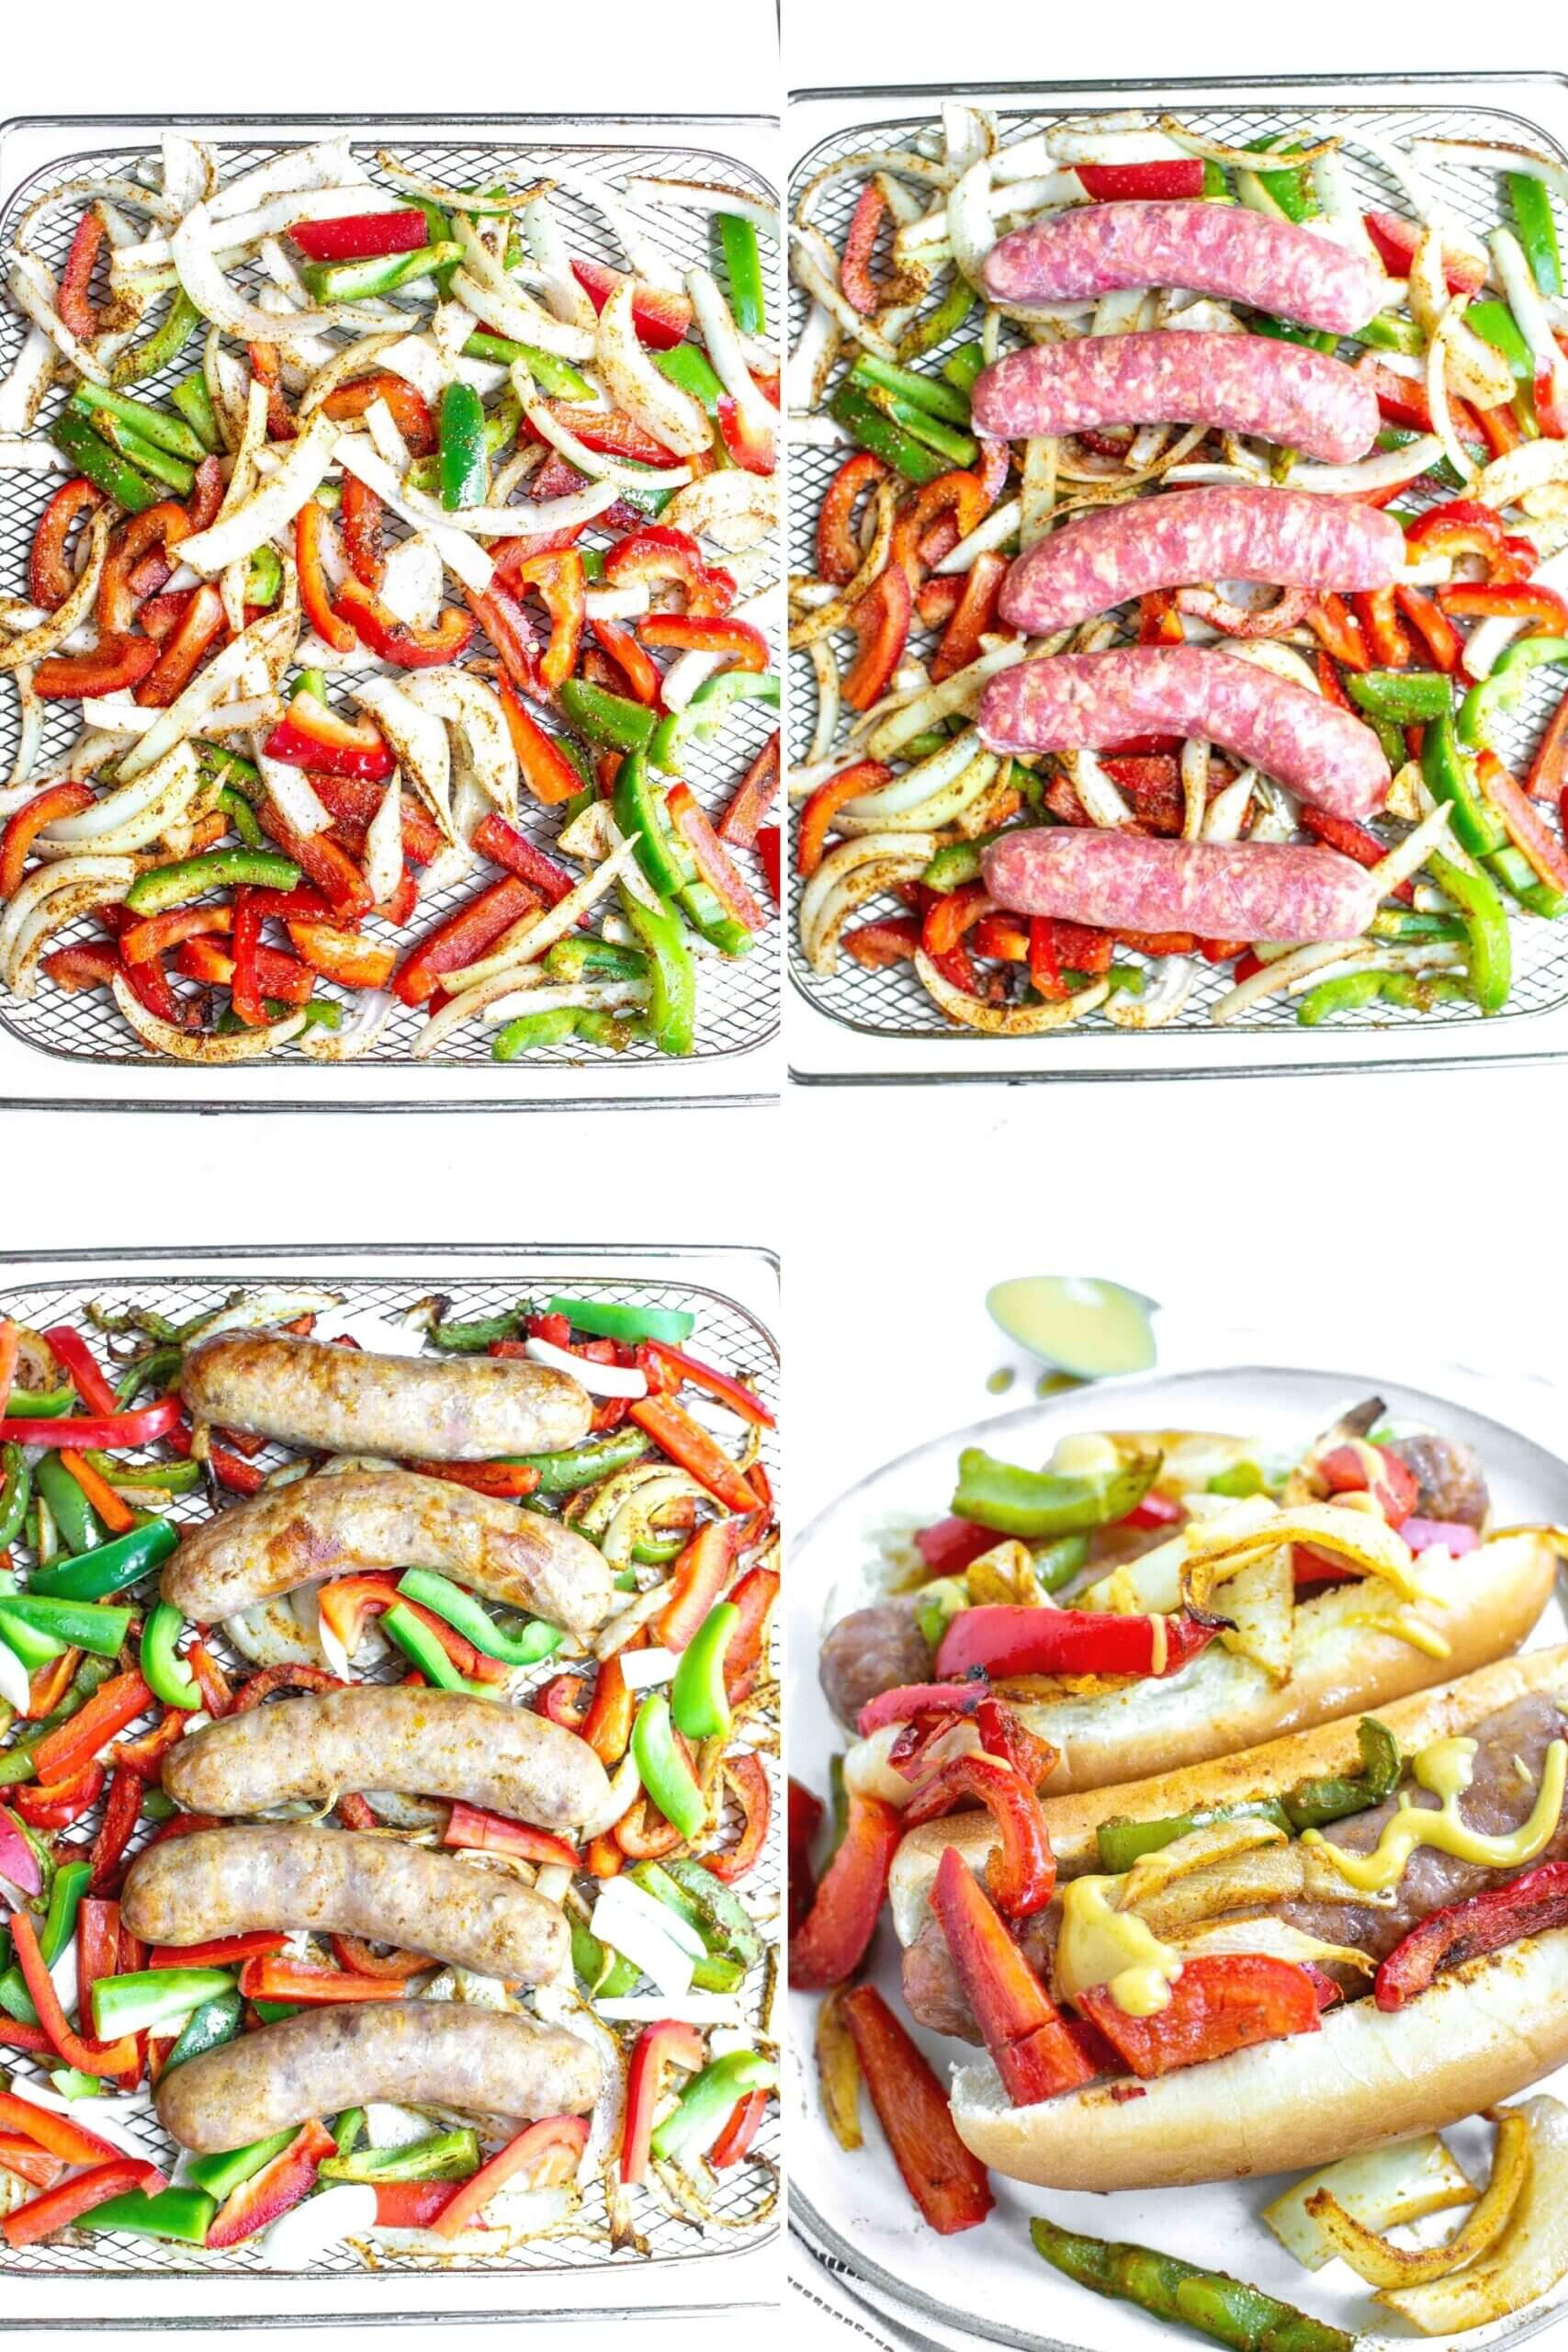 How to make Air Fryer Sausage and Peppers step by step